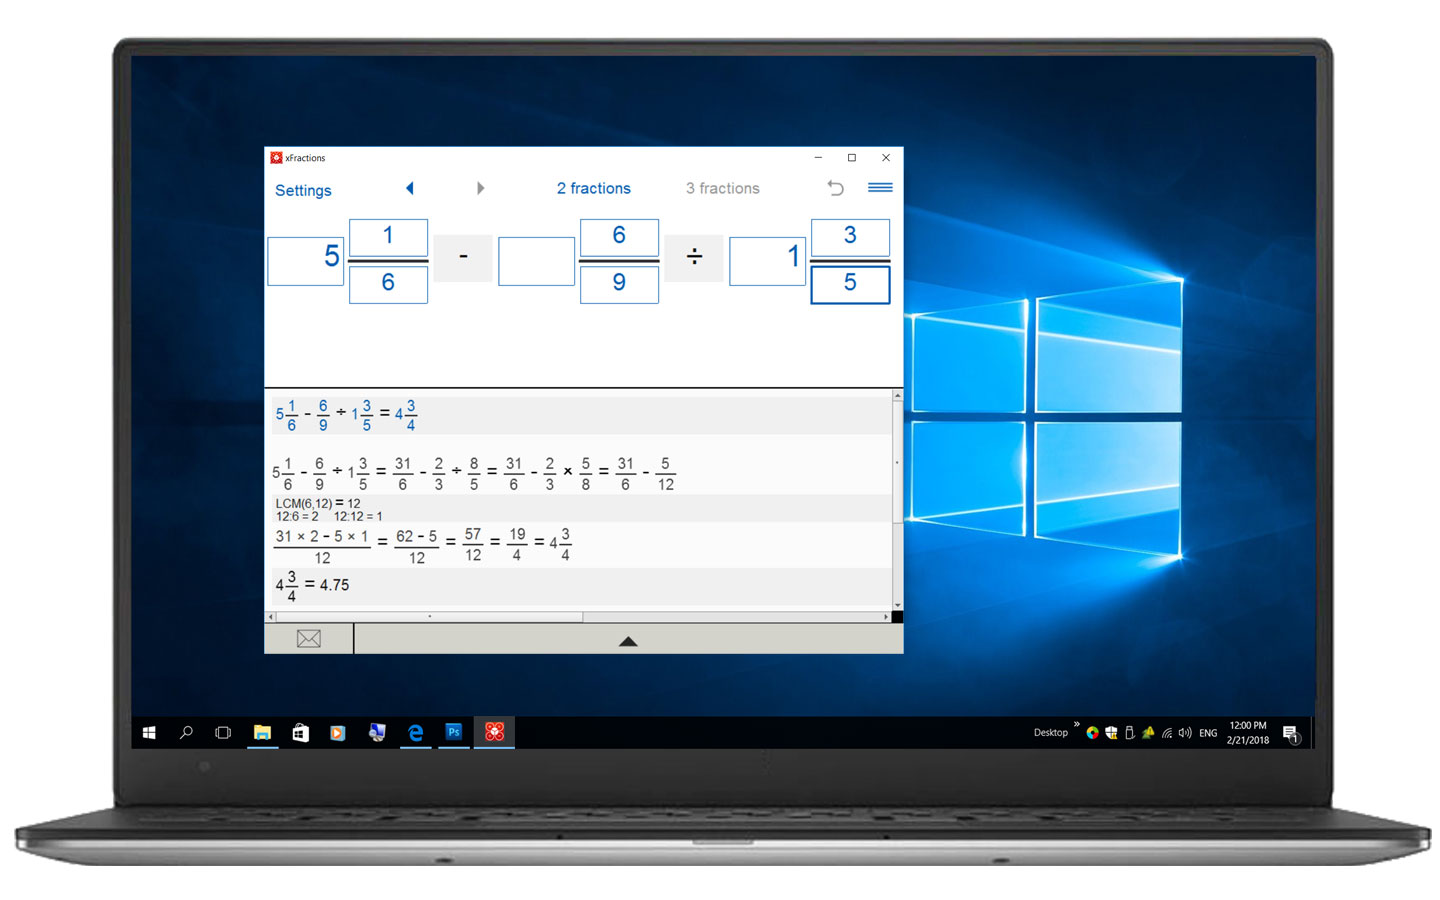 Fraction calculator for Windows